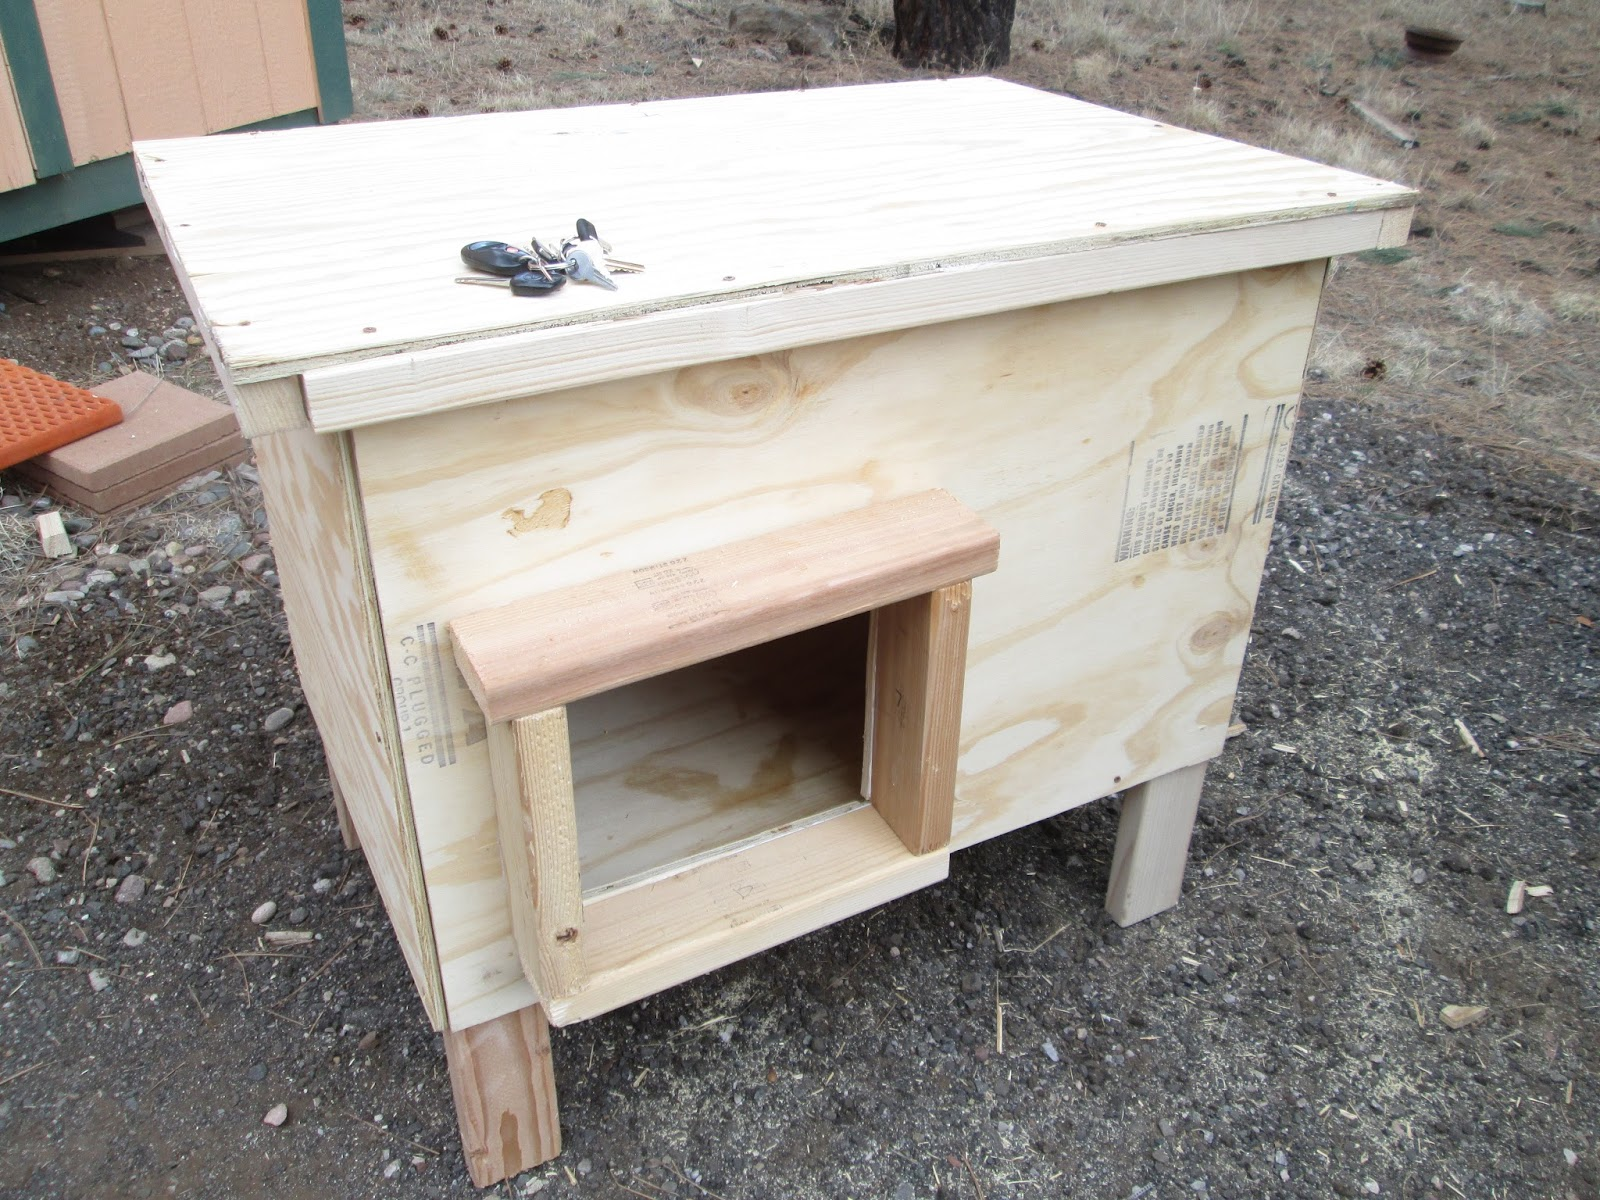 Ancient Pathways Survival School  LLC  DIY Dog House Plans After researching